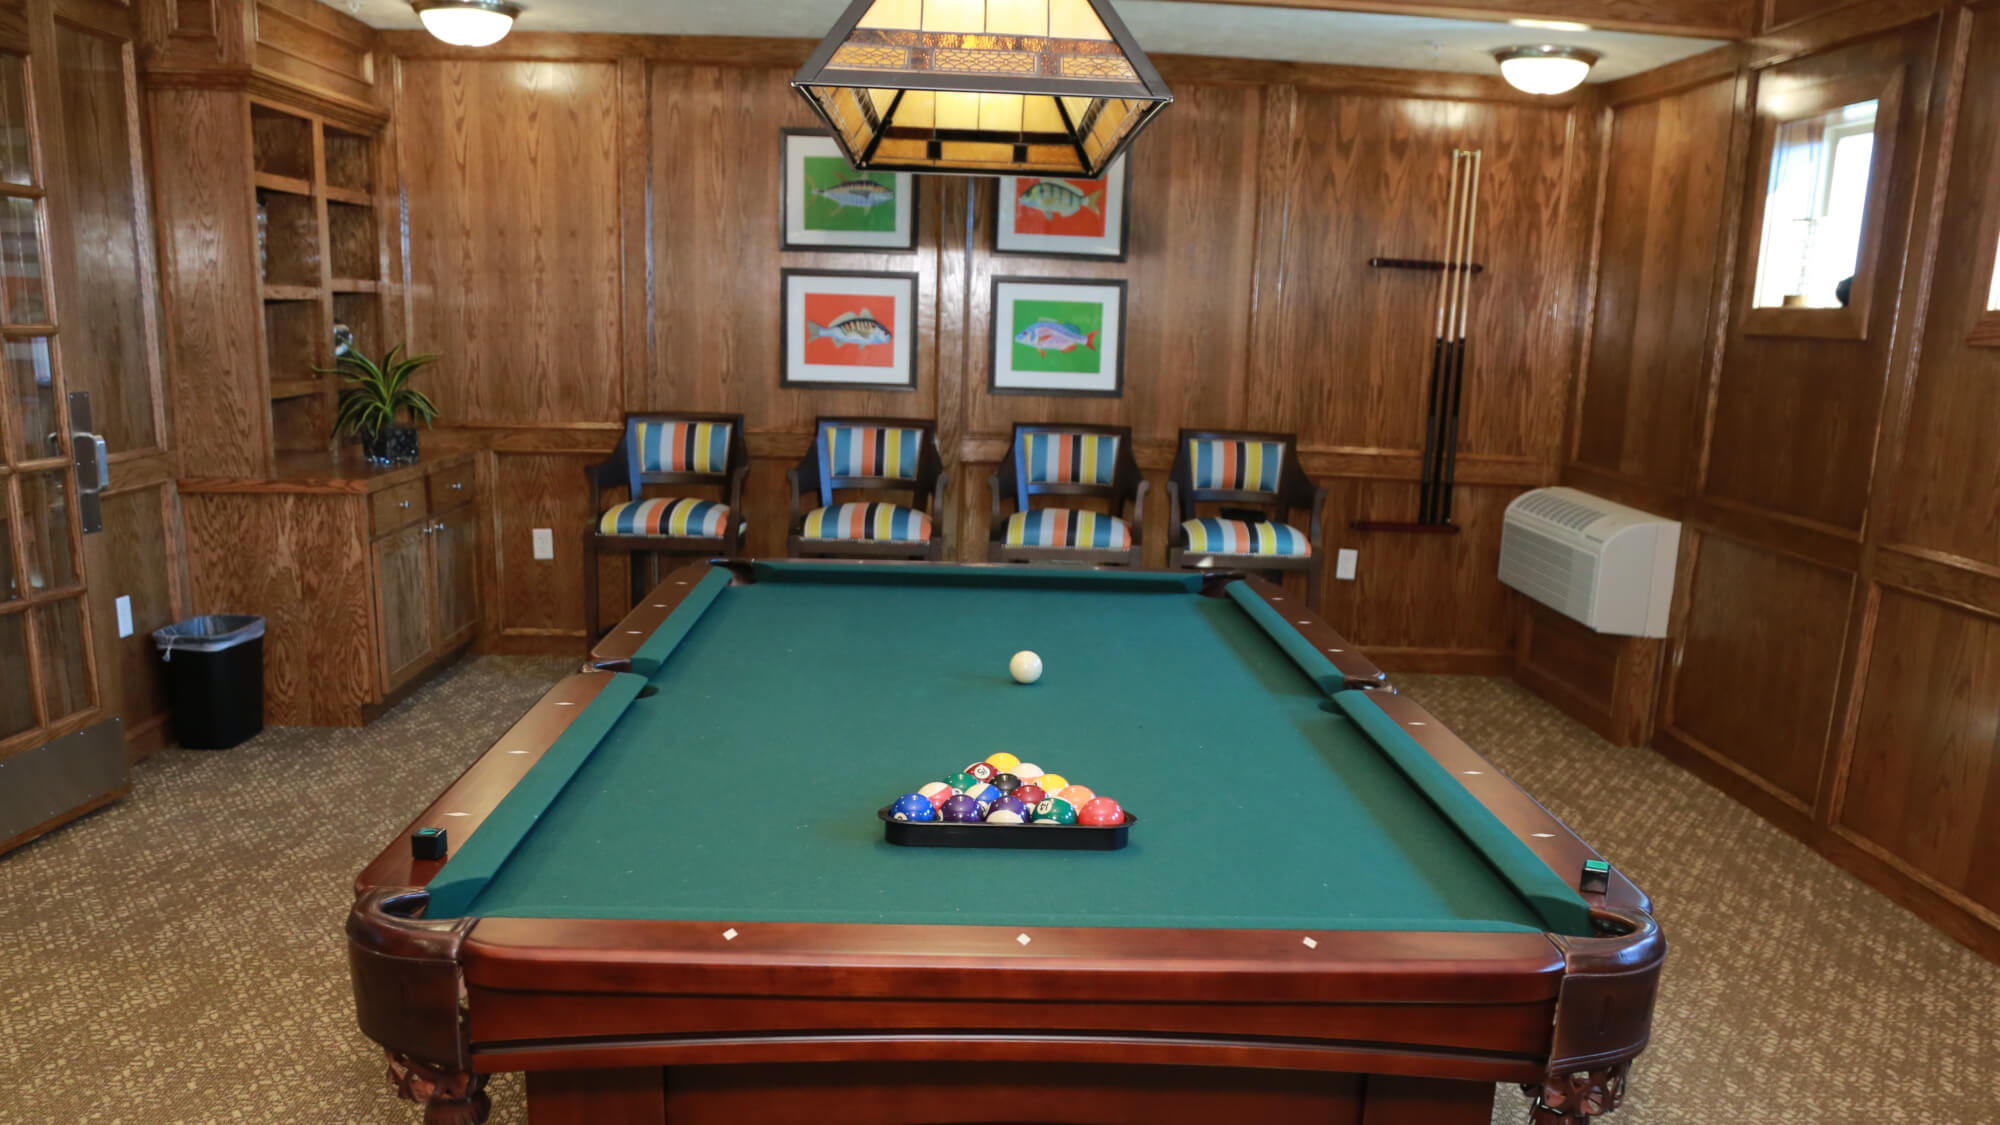 Billiards room at Cactus Valley